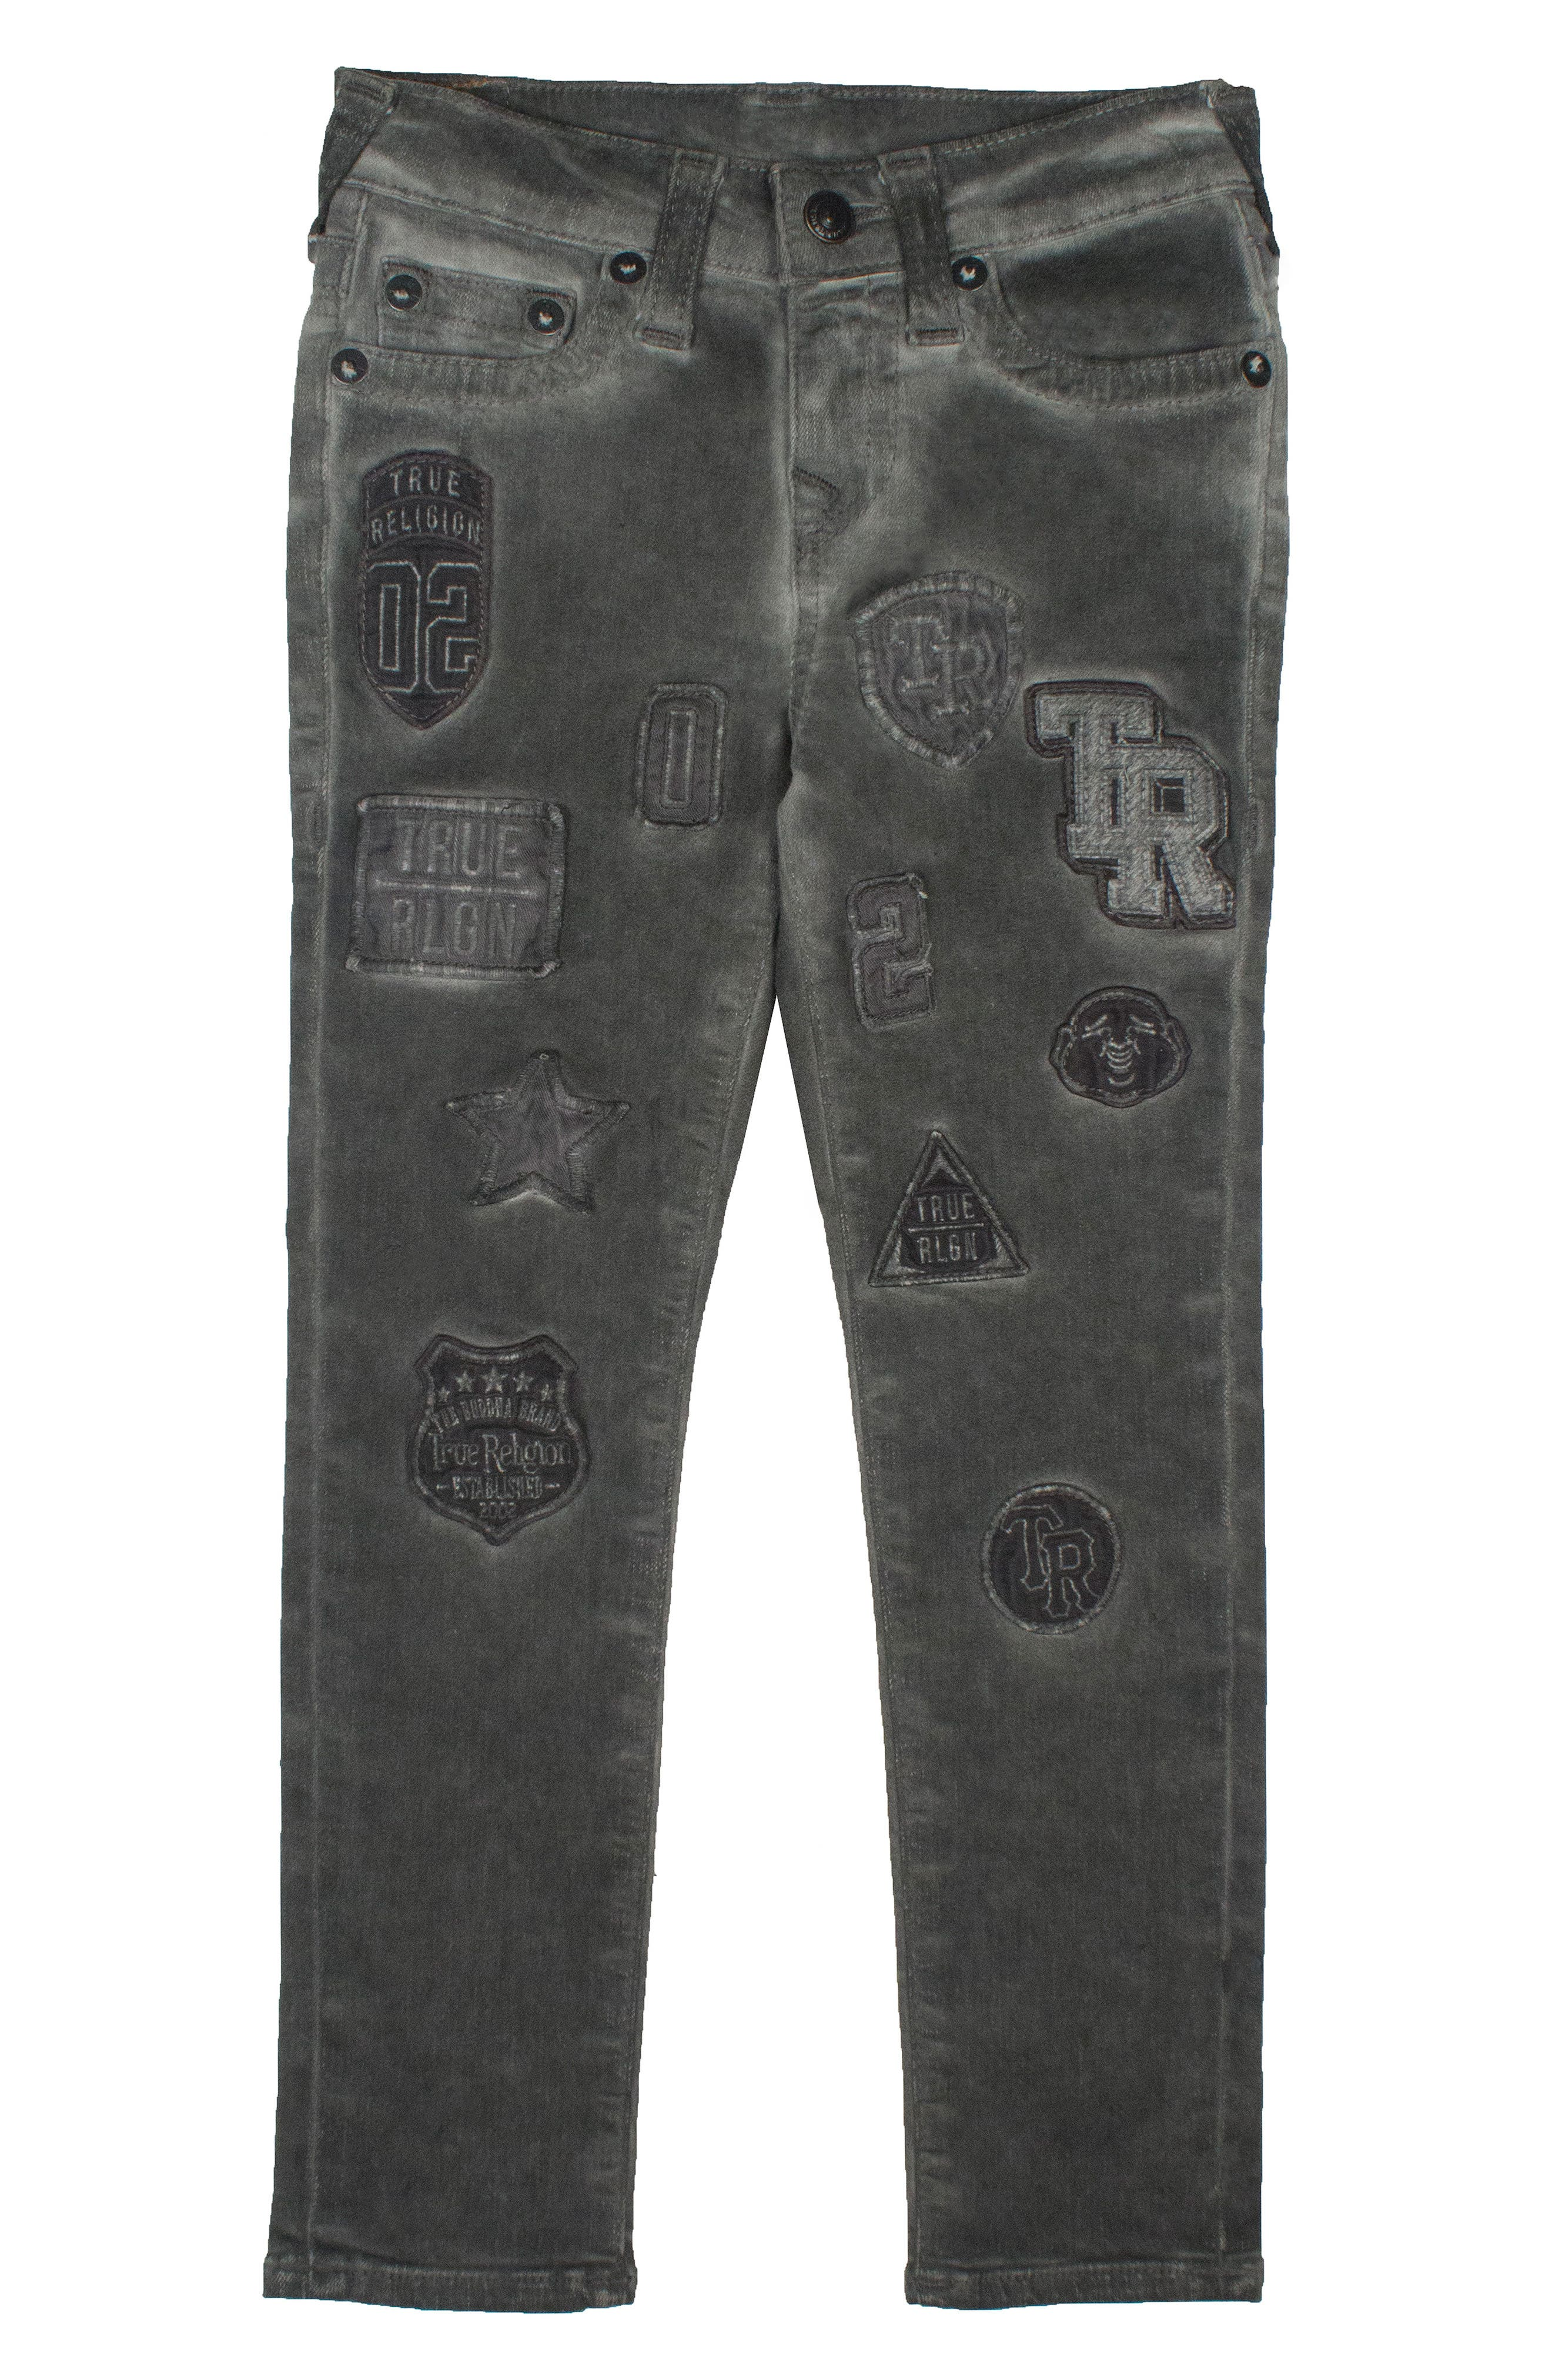 Main Image - True Religion Brand Jeans Rocco Single End Jeans (Big Boys)